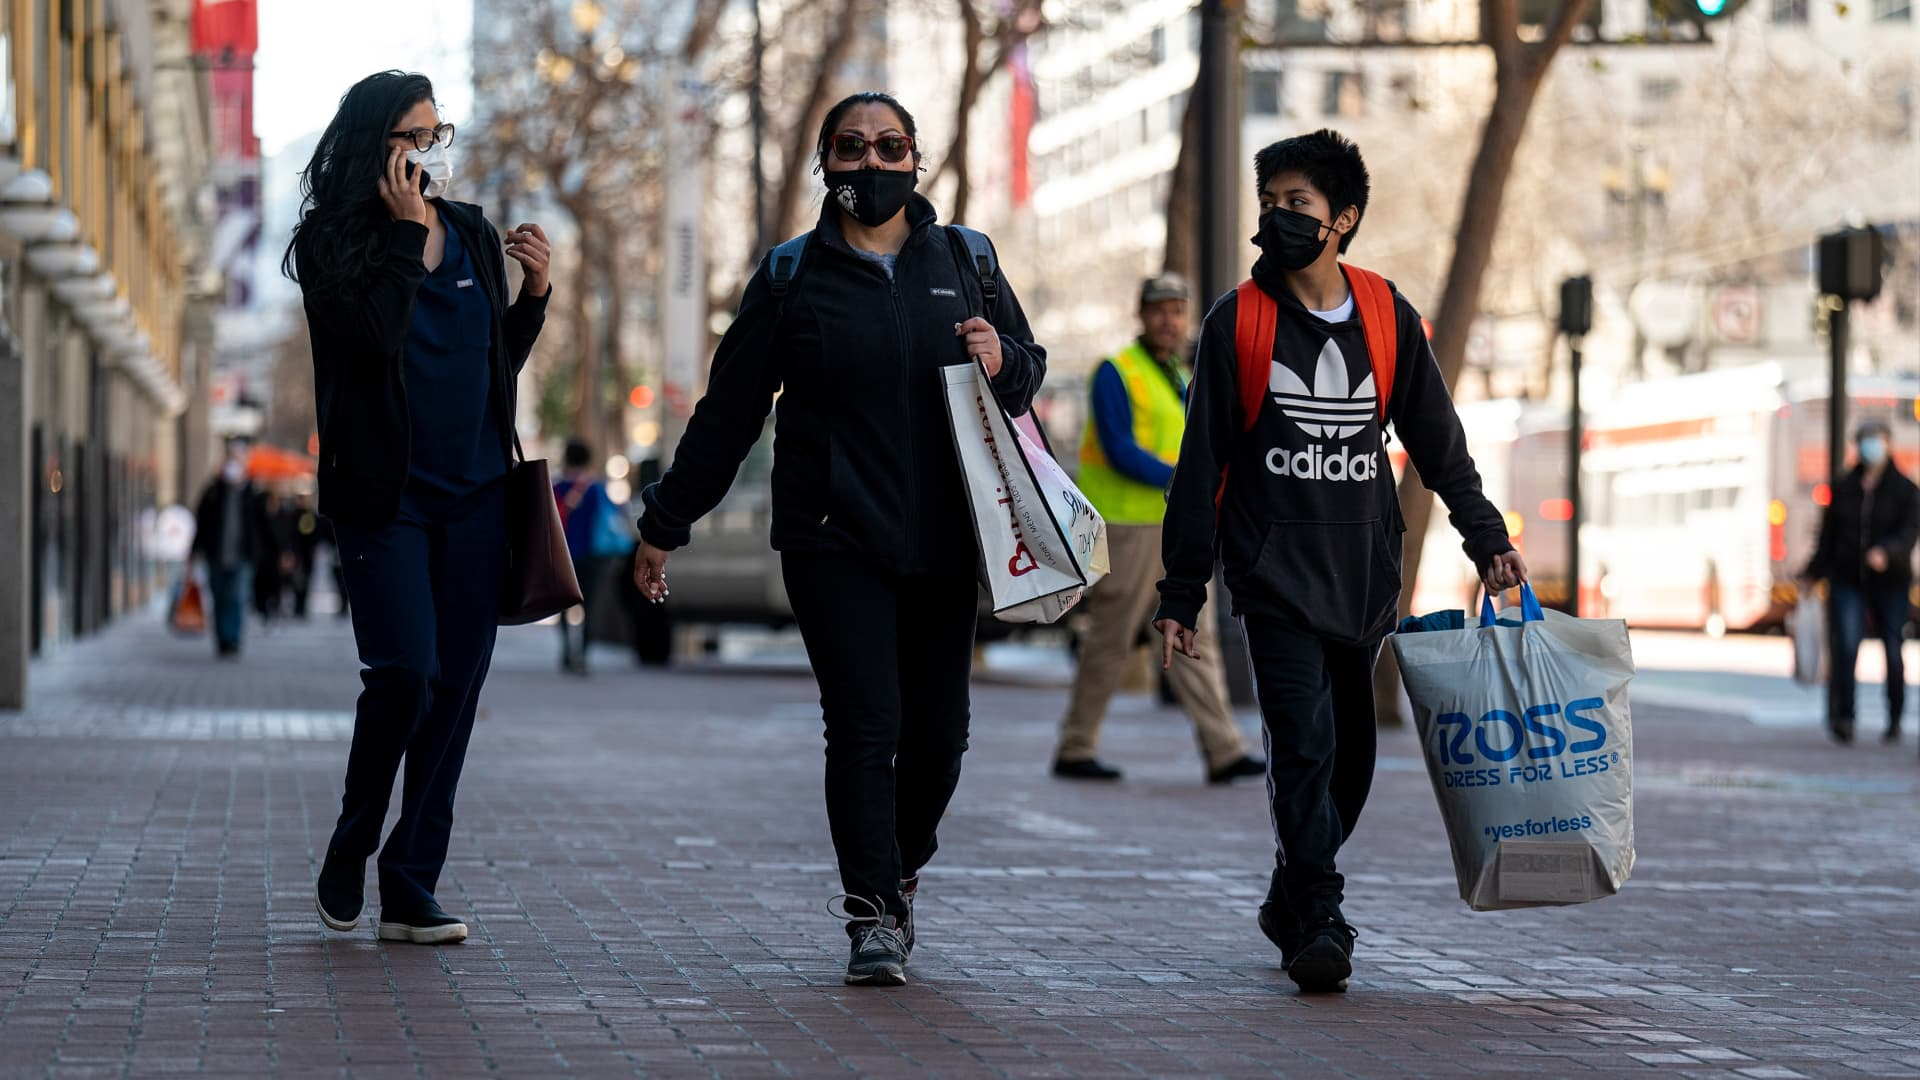 Pedestrians wearing protective masks carry shopping bags in San Francisco, California, on Wednesday, Feb. 17, 2021.